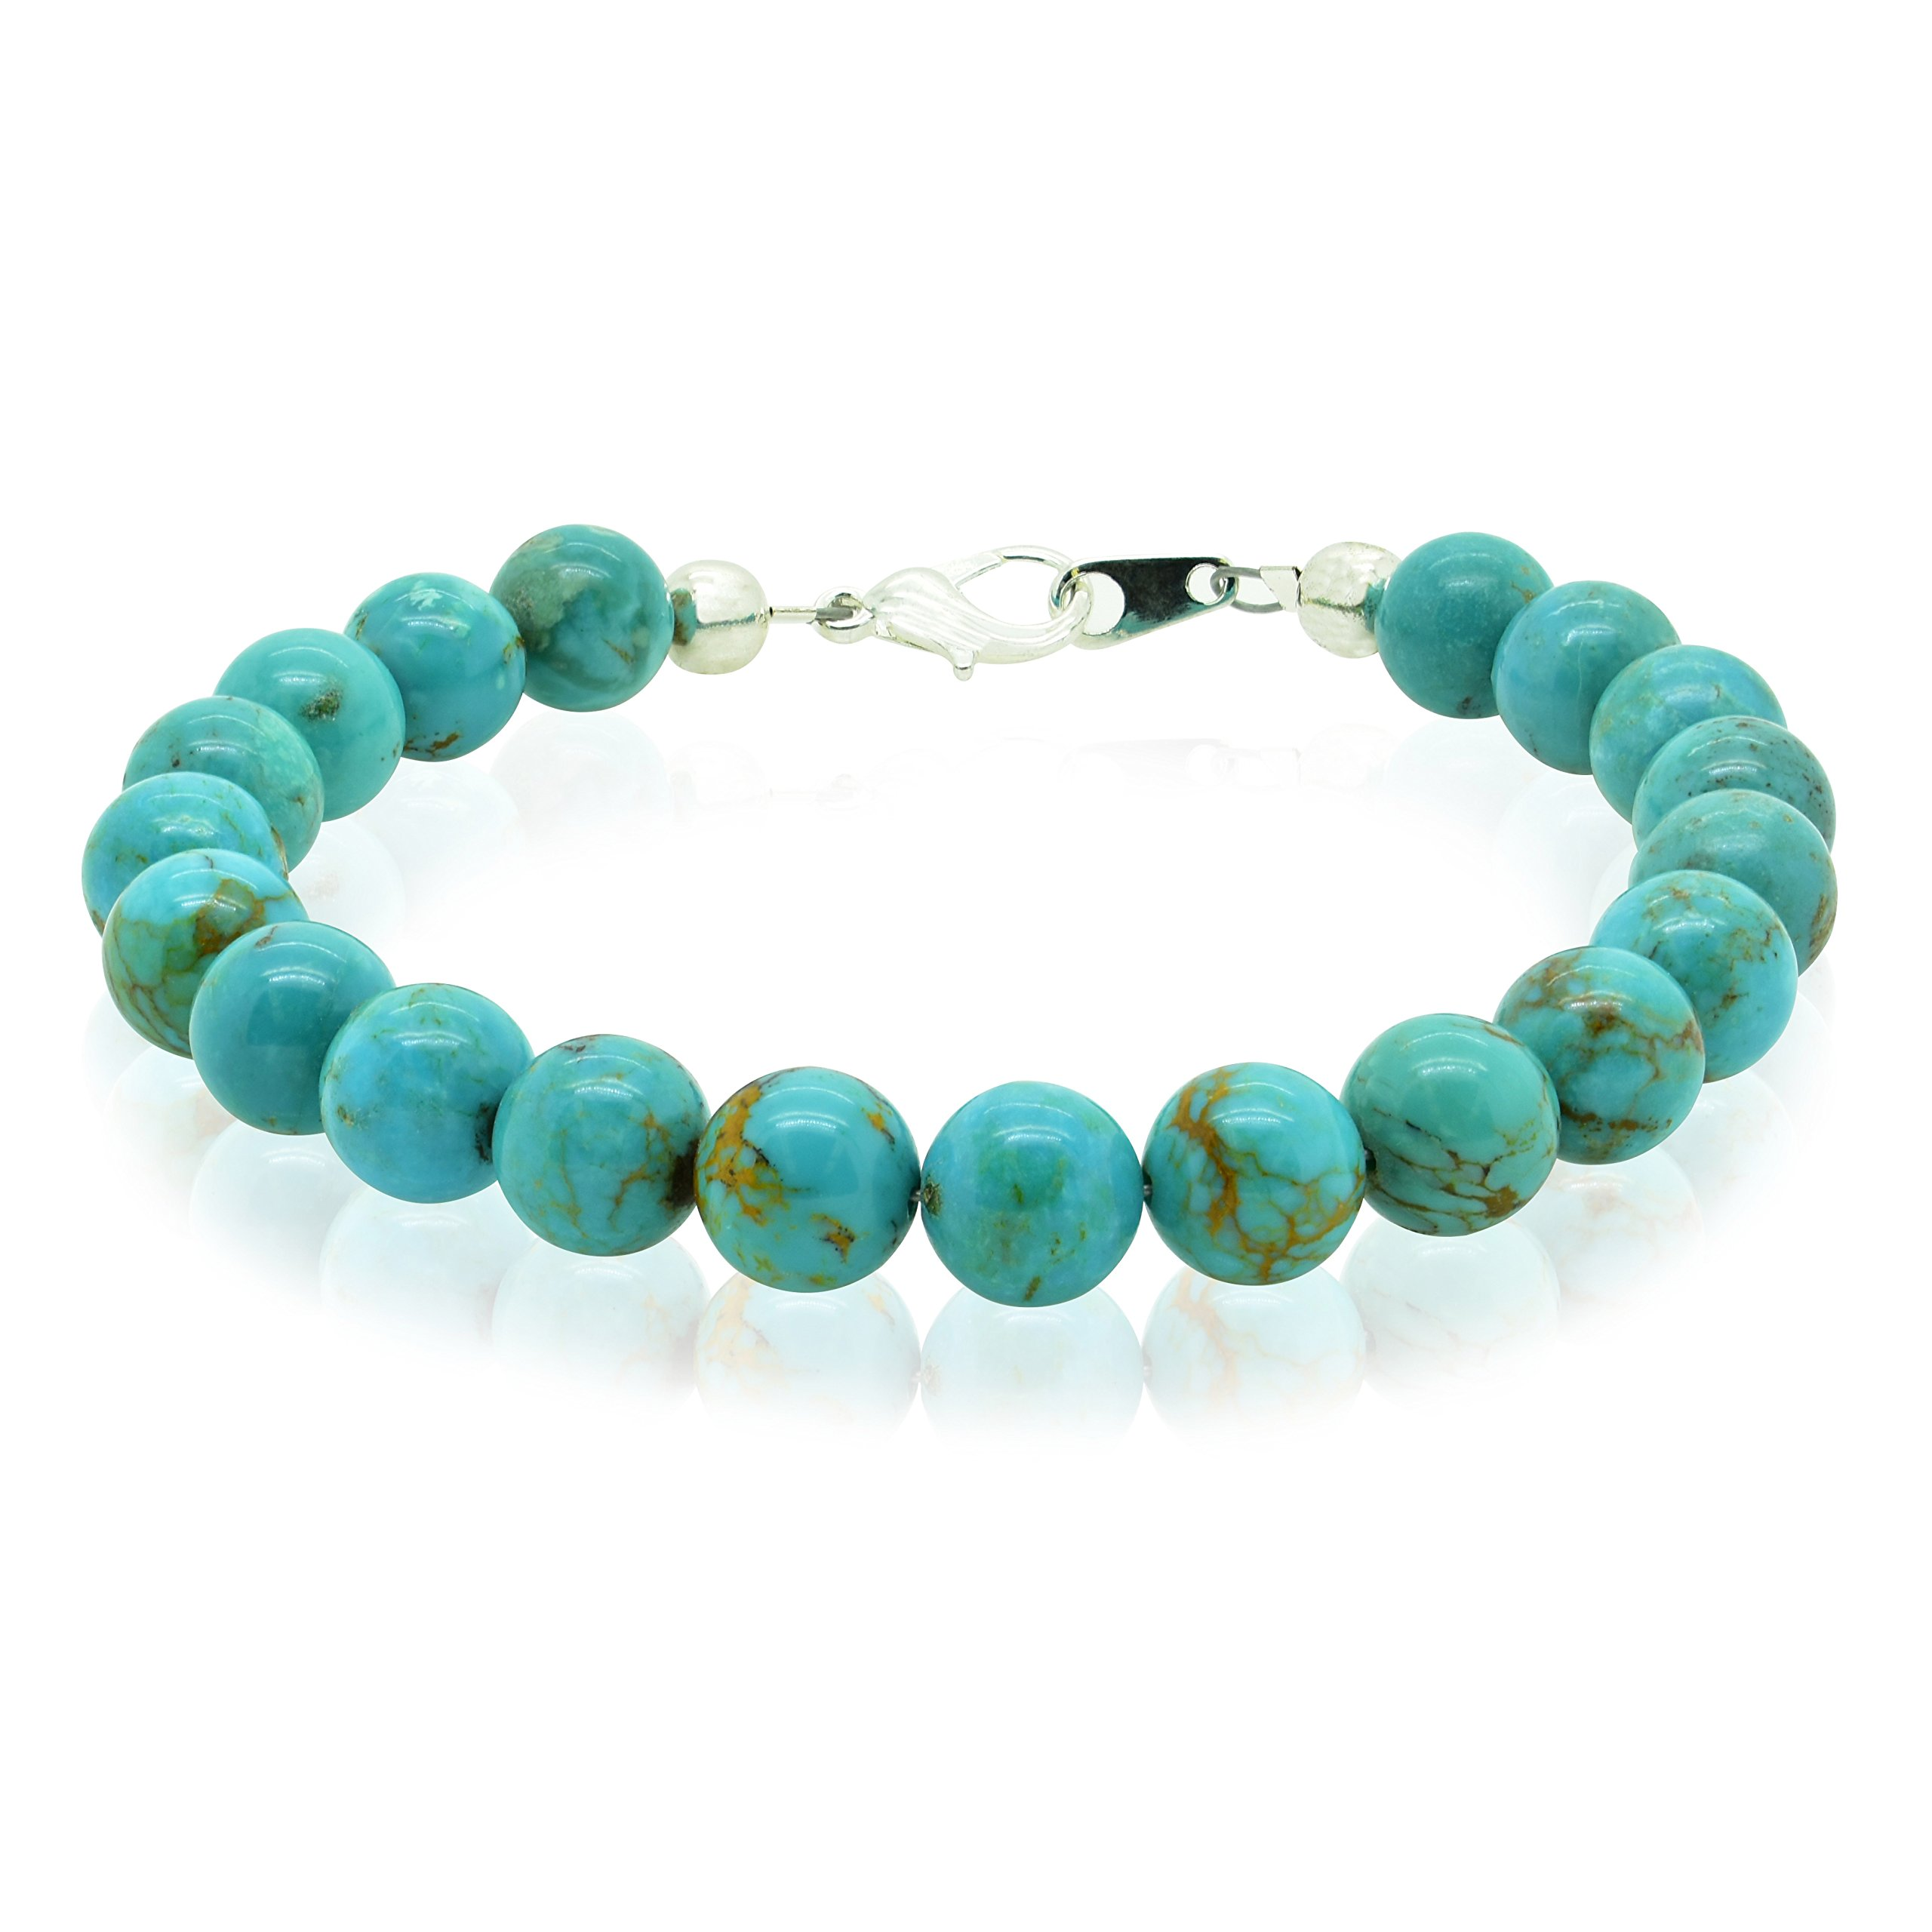 Bluejoy Jewelry Genuine Natural Turquoise Bracelet 8mm Perfect Round Beads with Lobster Clasp by Bluejoy (Image #1)